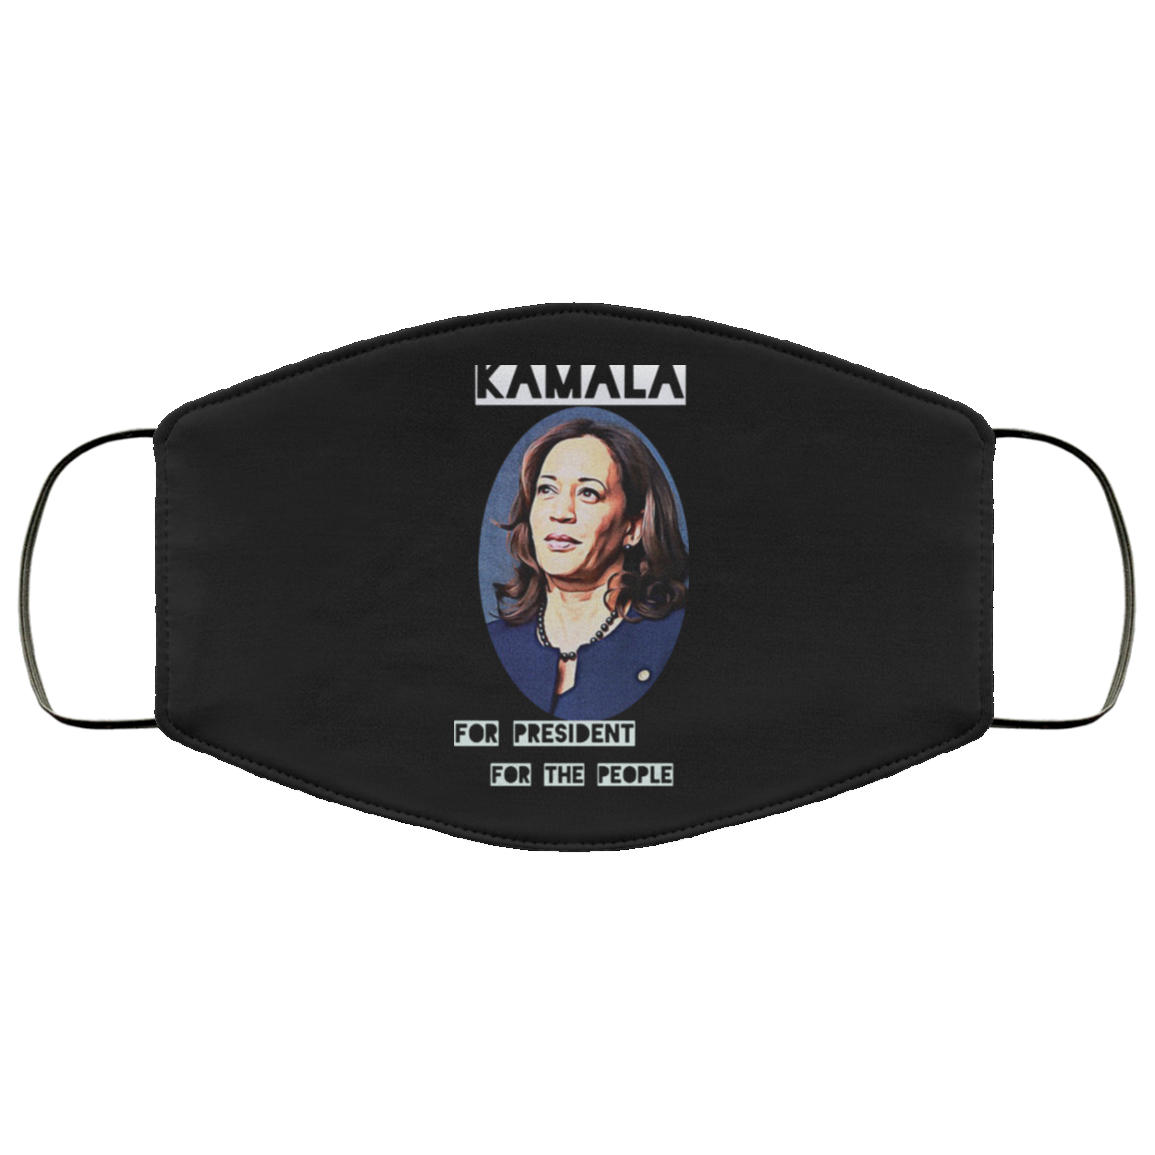 Kamala For President For The People Kamala Harris 2020 Face Mask